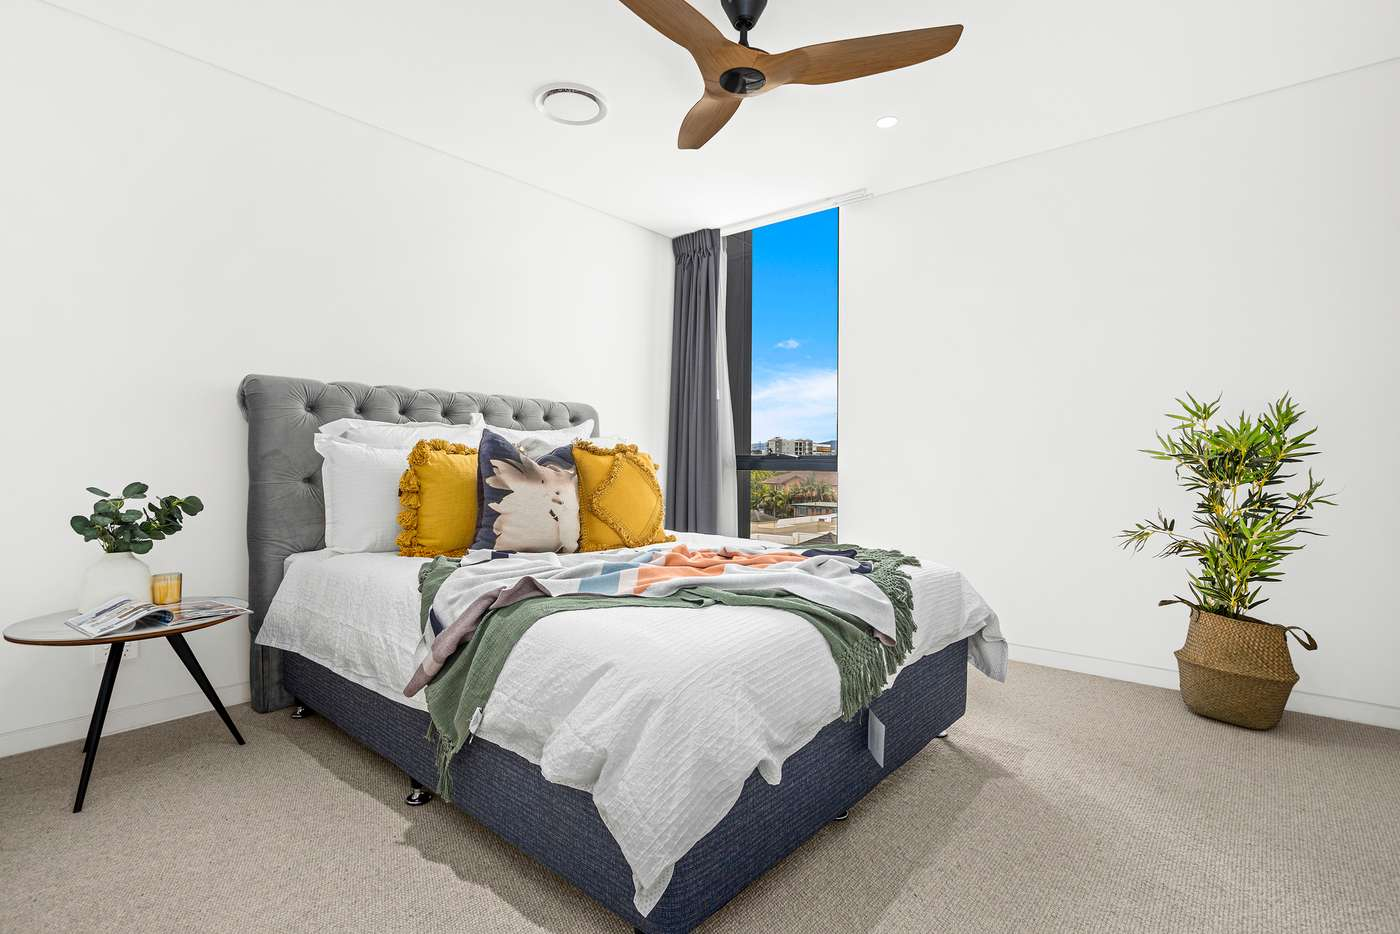 Sixth view of Homely apartment listing, 12/19-21 Kembla Street, Wollongong NSW 2500